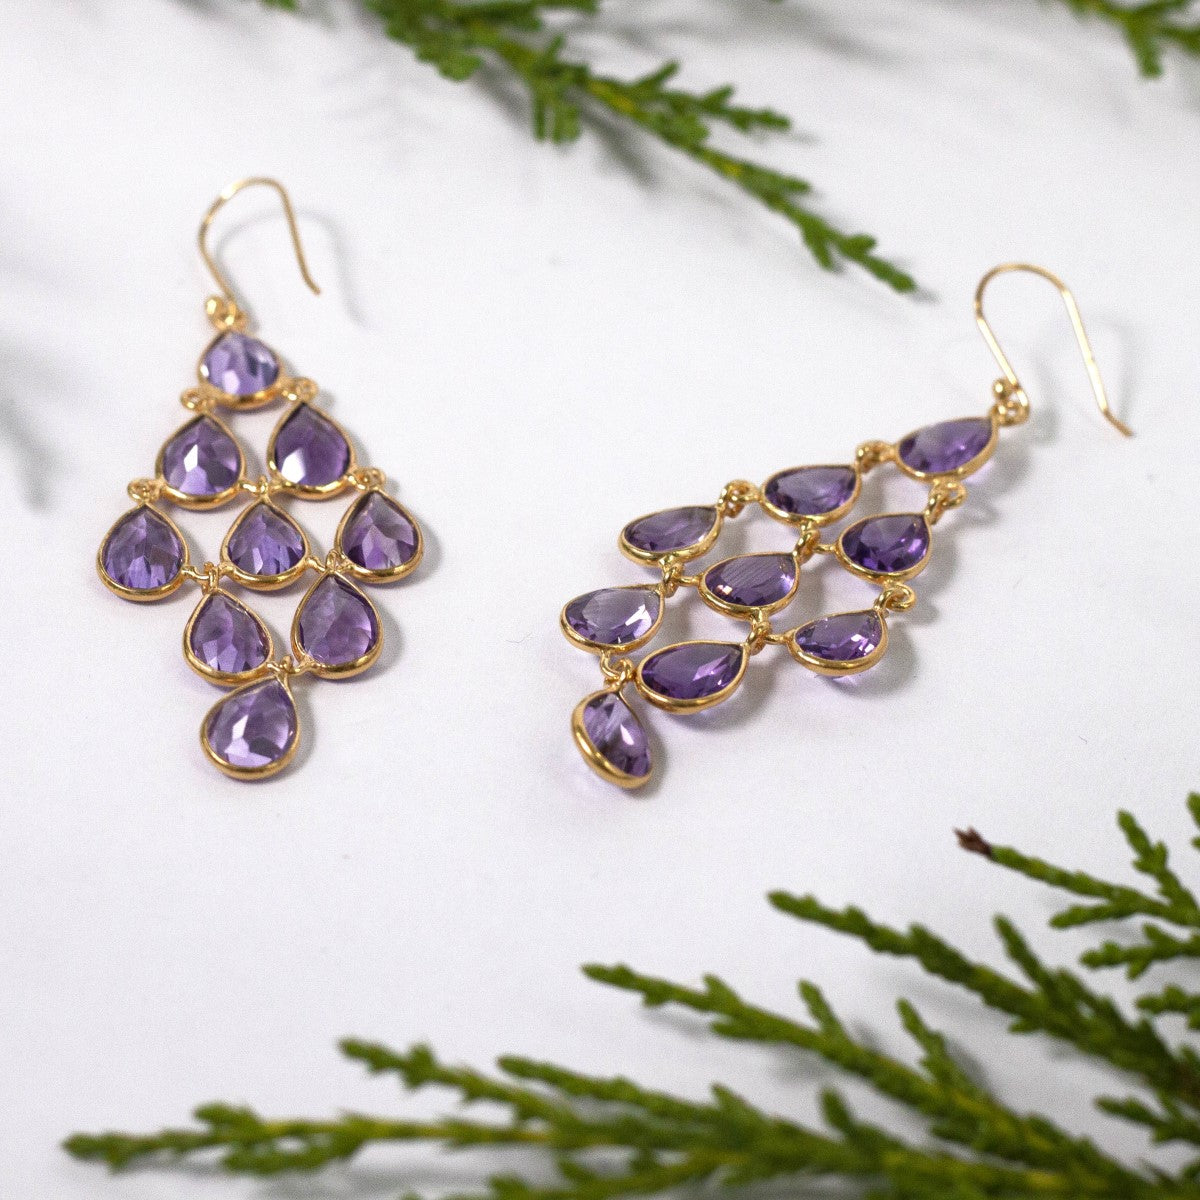 Gold Plated Sterling Silver Chandelier Earrings with Semi-Precious Stones - Amethyst